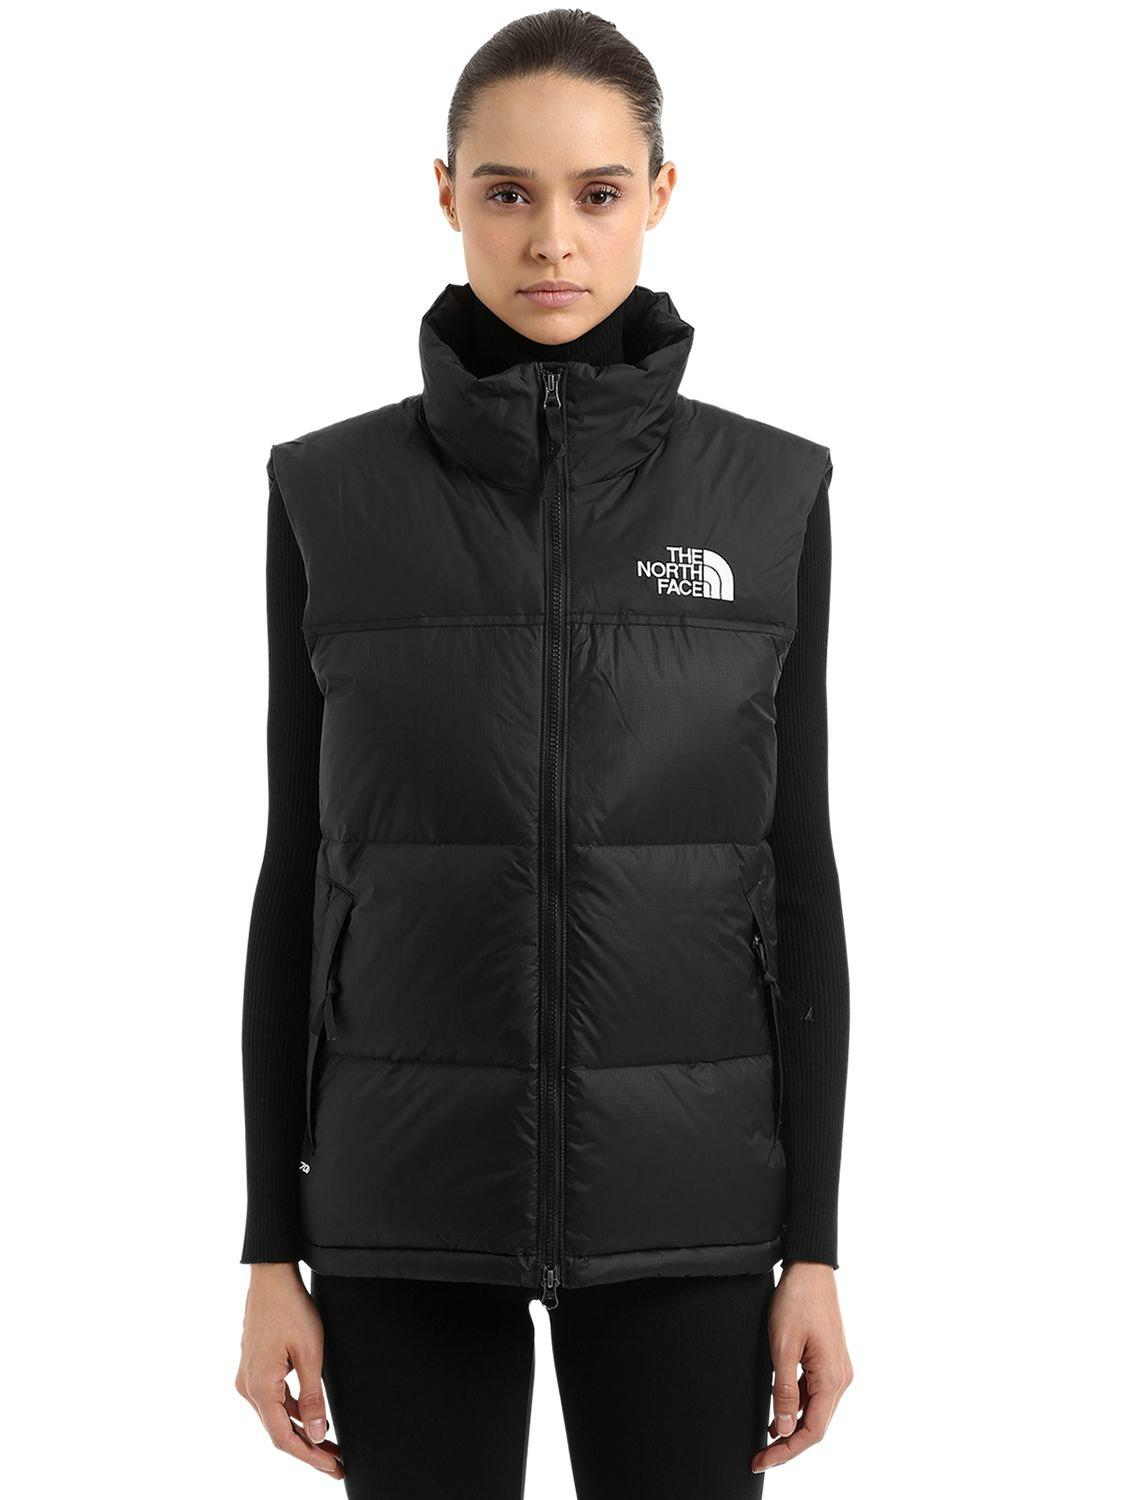 The North Face 1996 Retro Nuptse Down Vest in Black - Save 20% - Lyst 3296aeabb